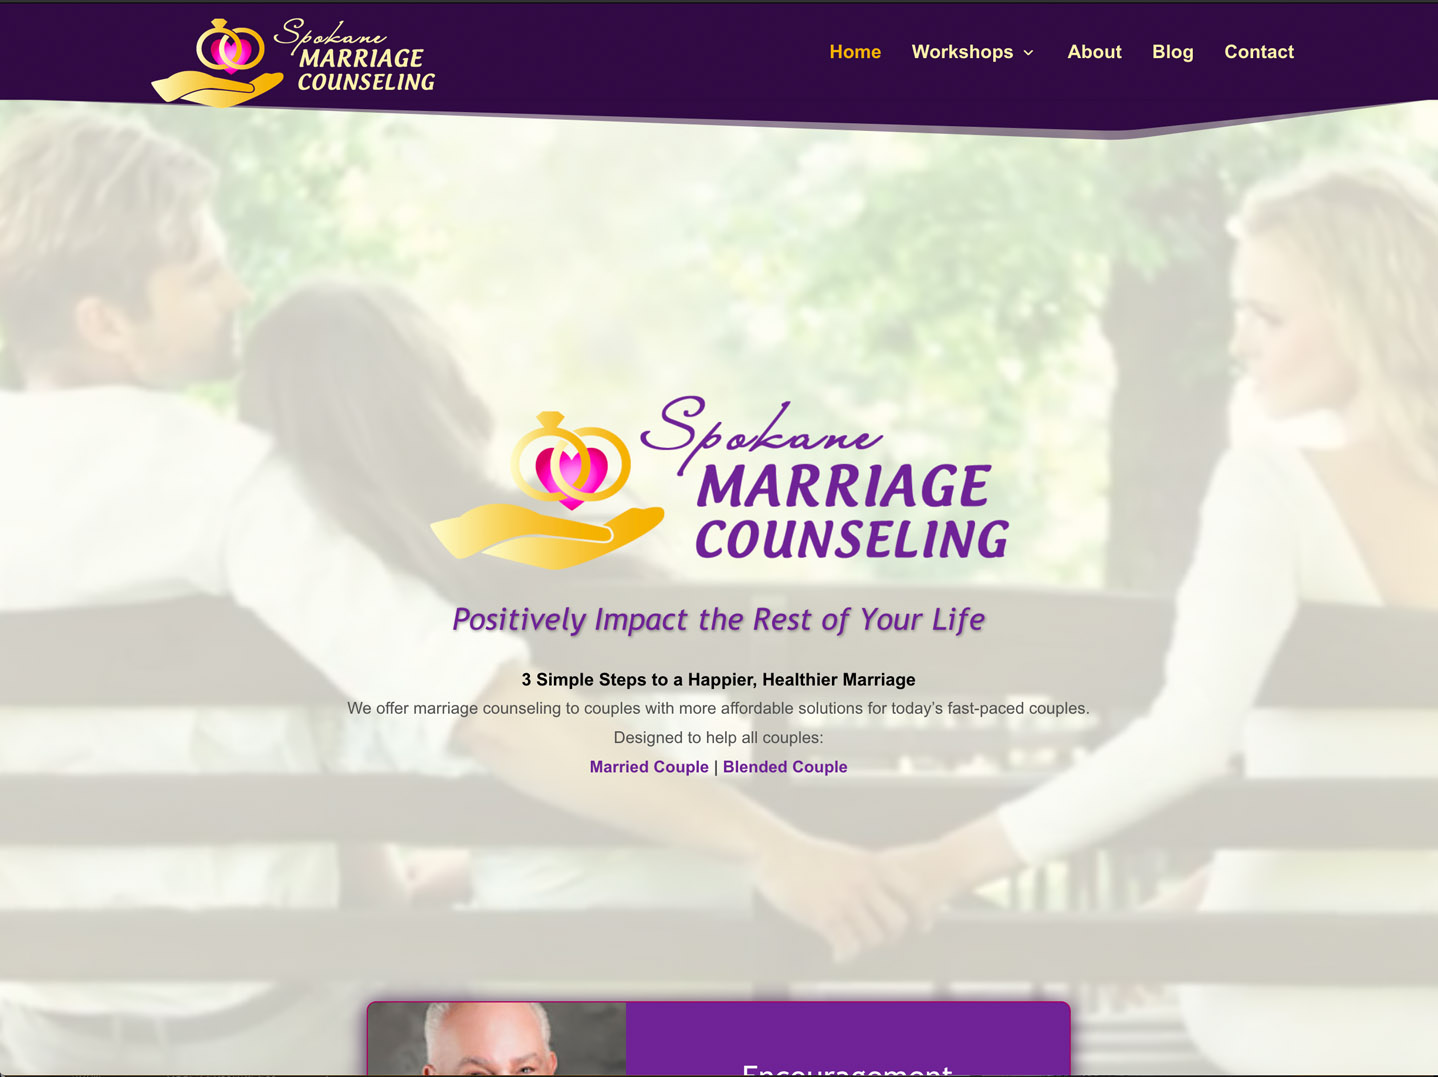 Spokane Marriage Counseling